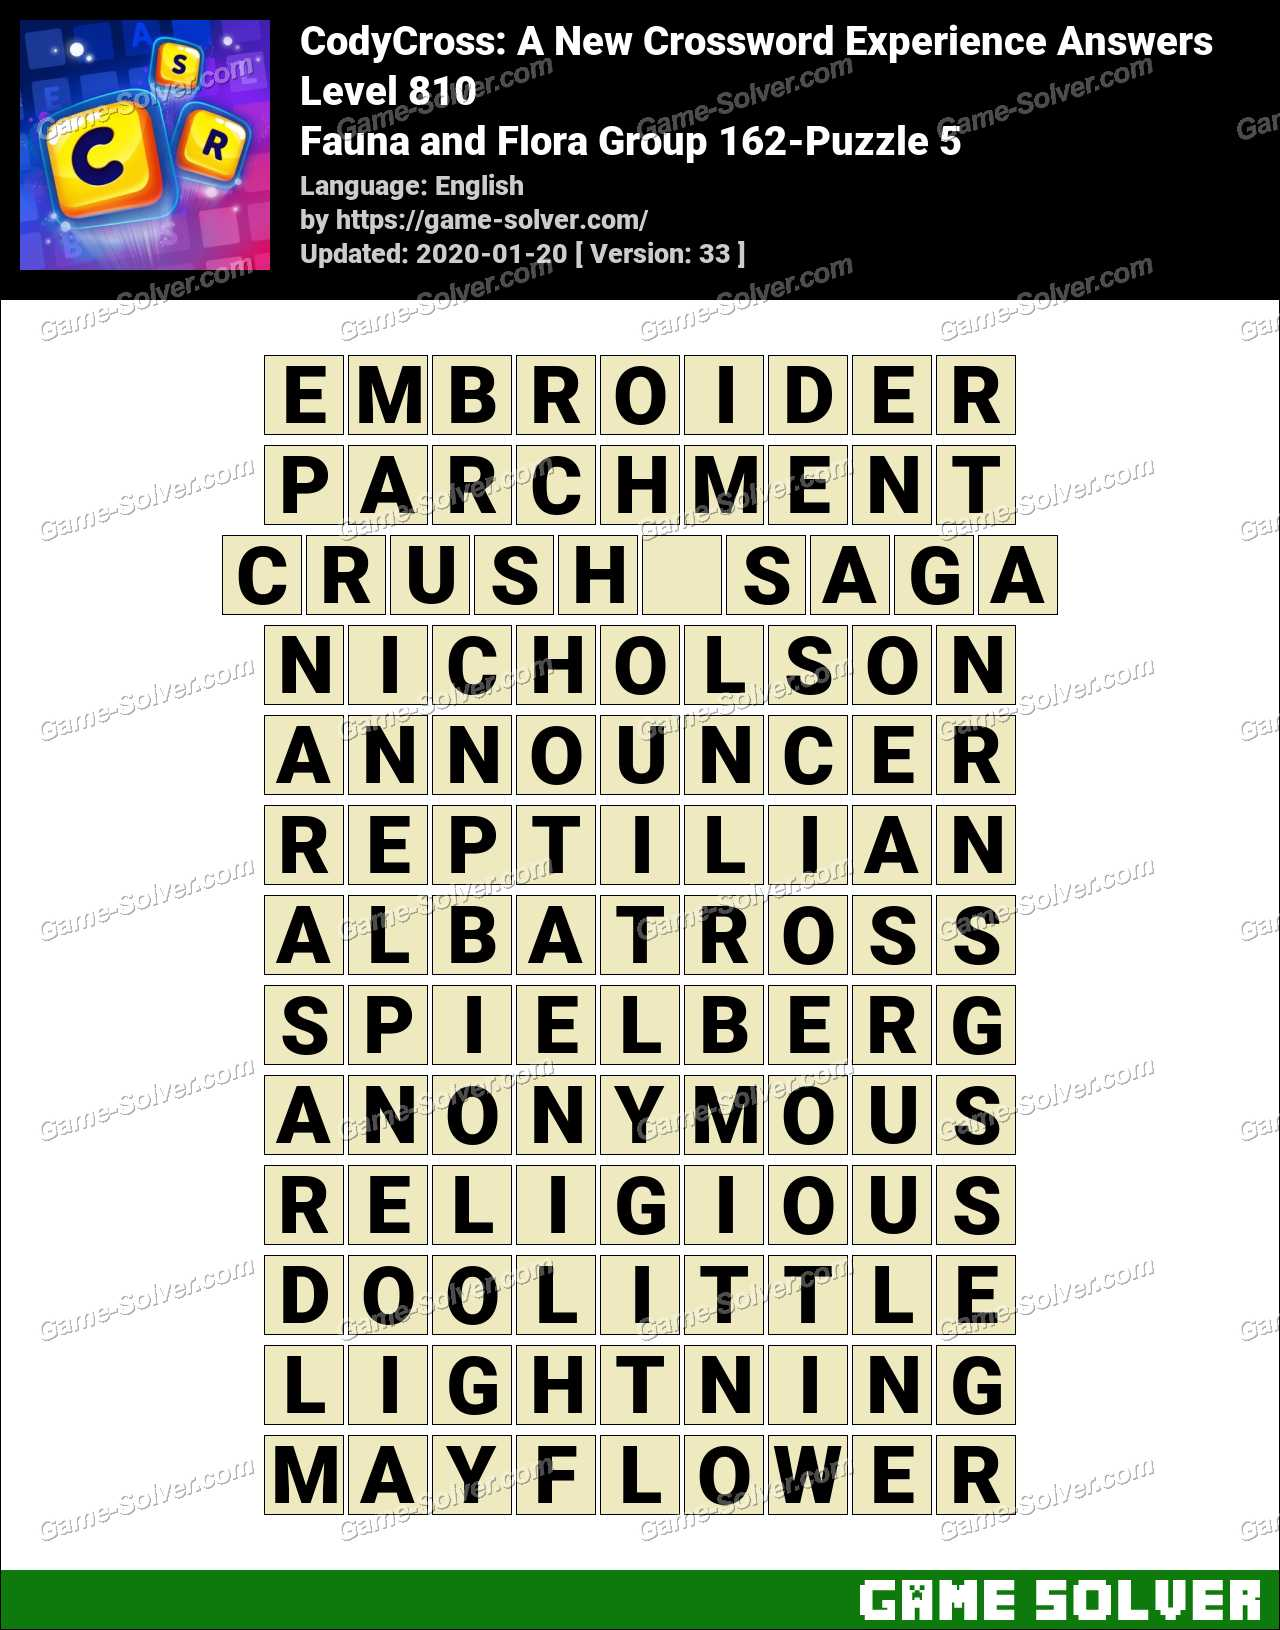 CodyCross Fauna and Flora Group 162-Puzzle 5 Answers